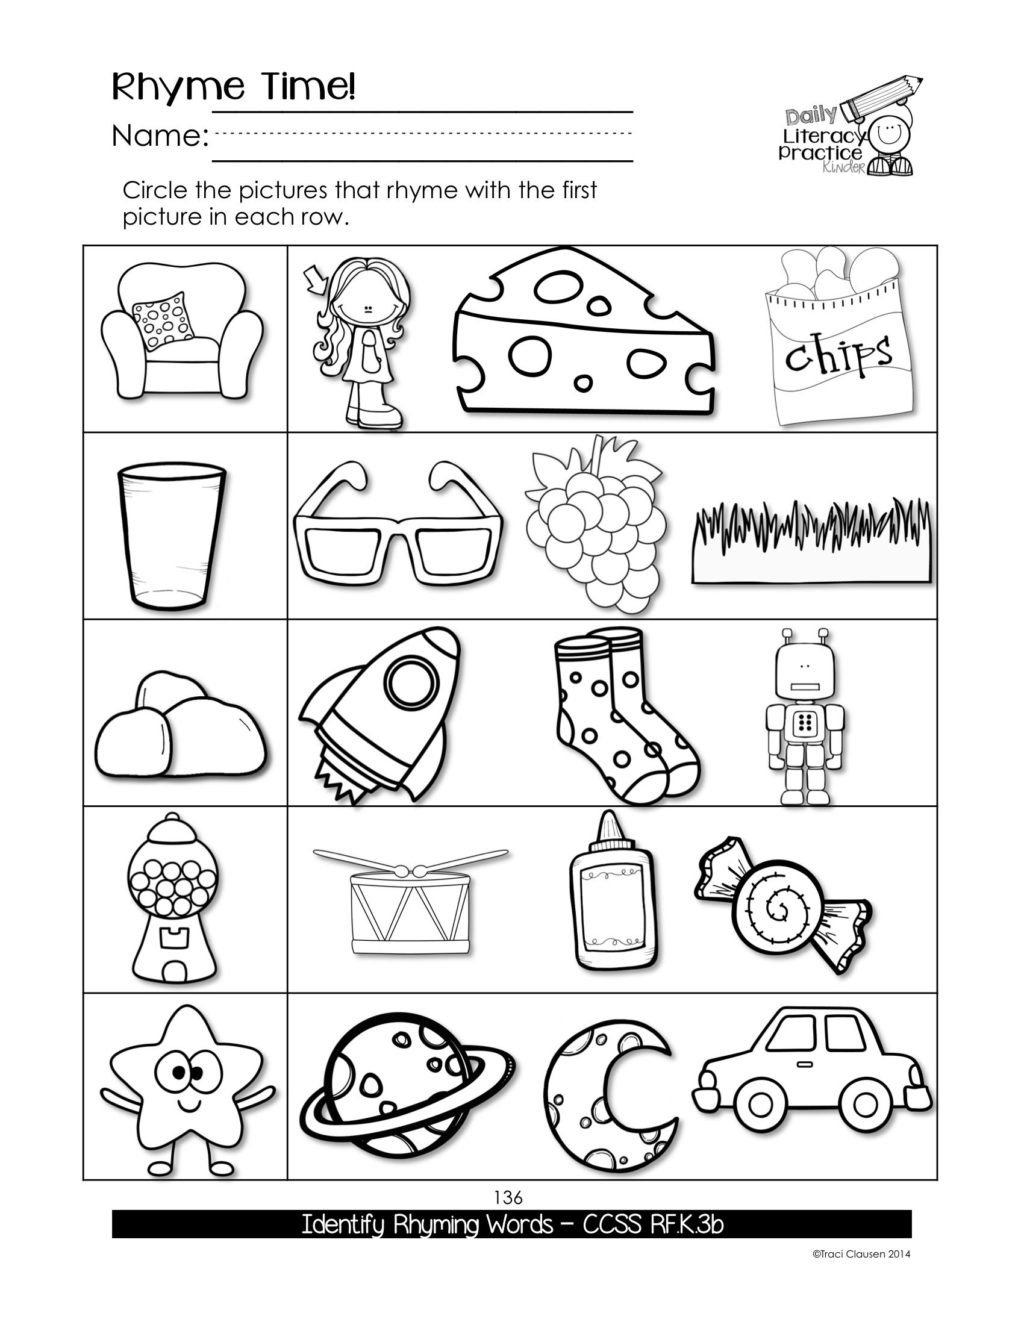 Social Studies Worksheets for Kindergarten Worksheet social Stu S Worksheets for Kids Free